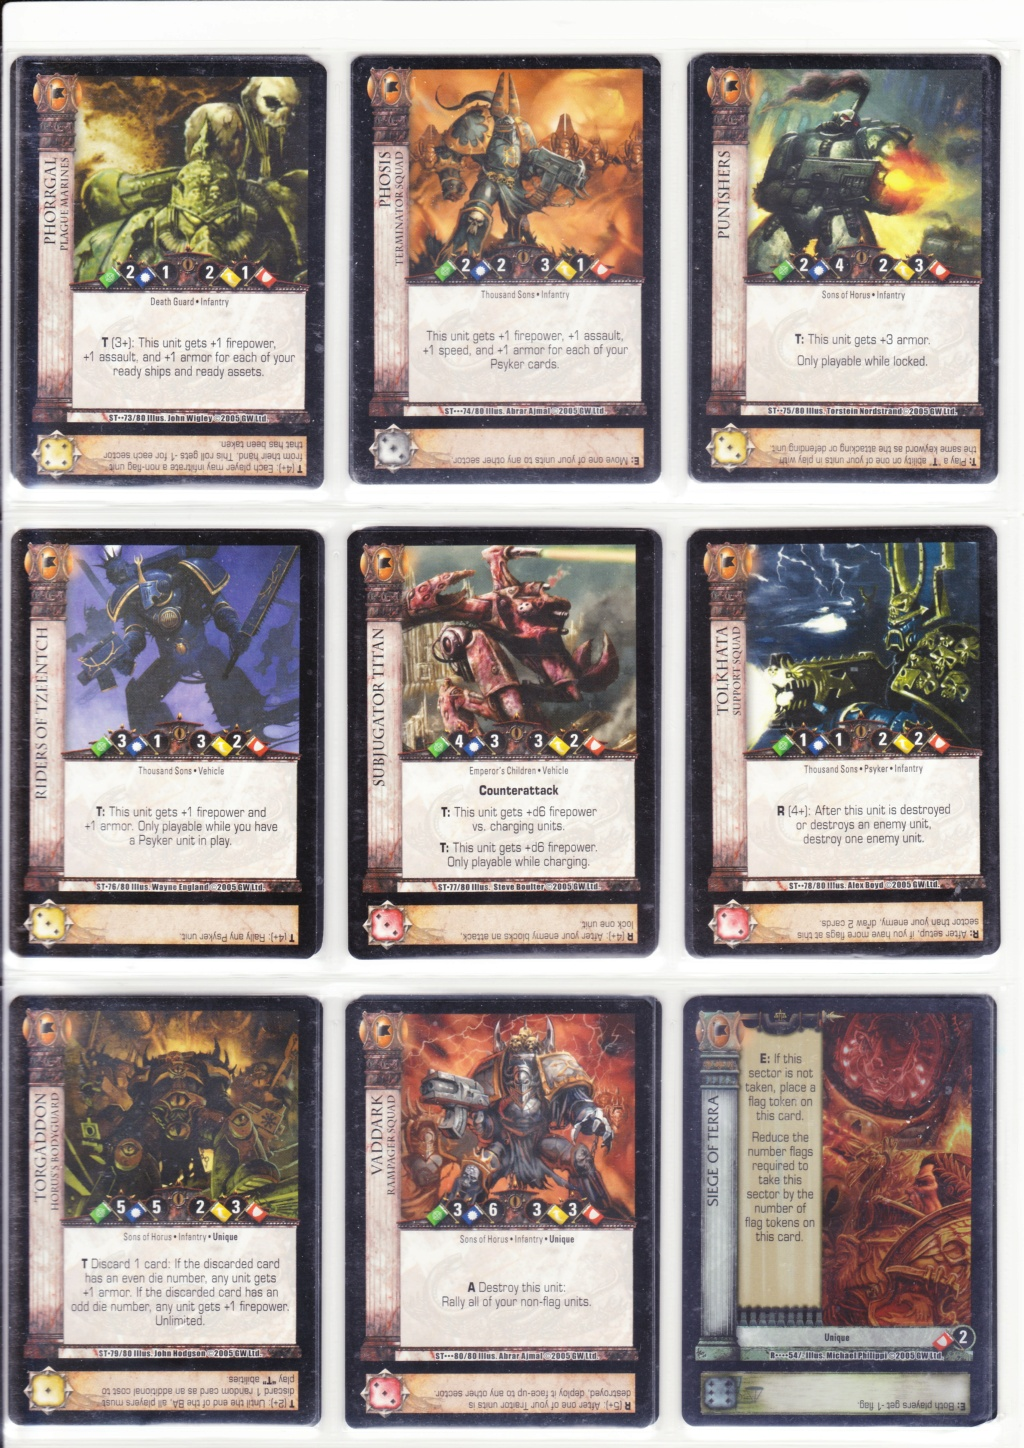 [JdC] Horus Heresy The card game - Page 2 Scn_0018